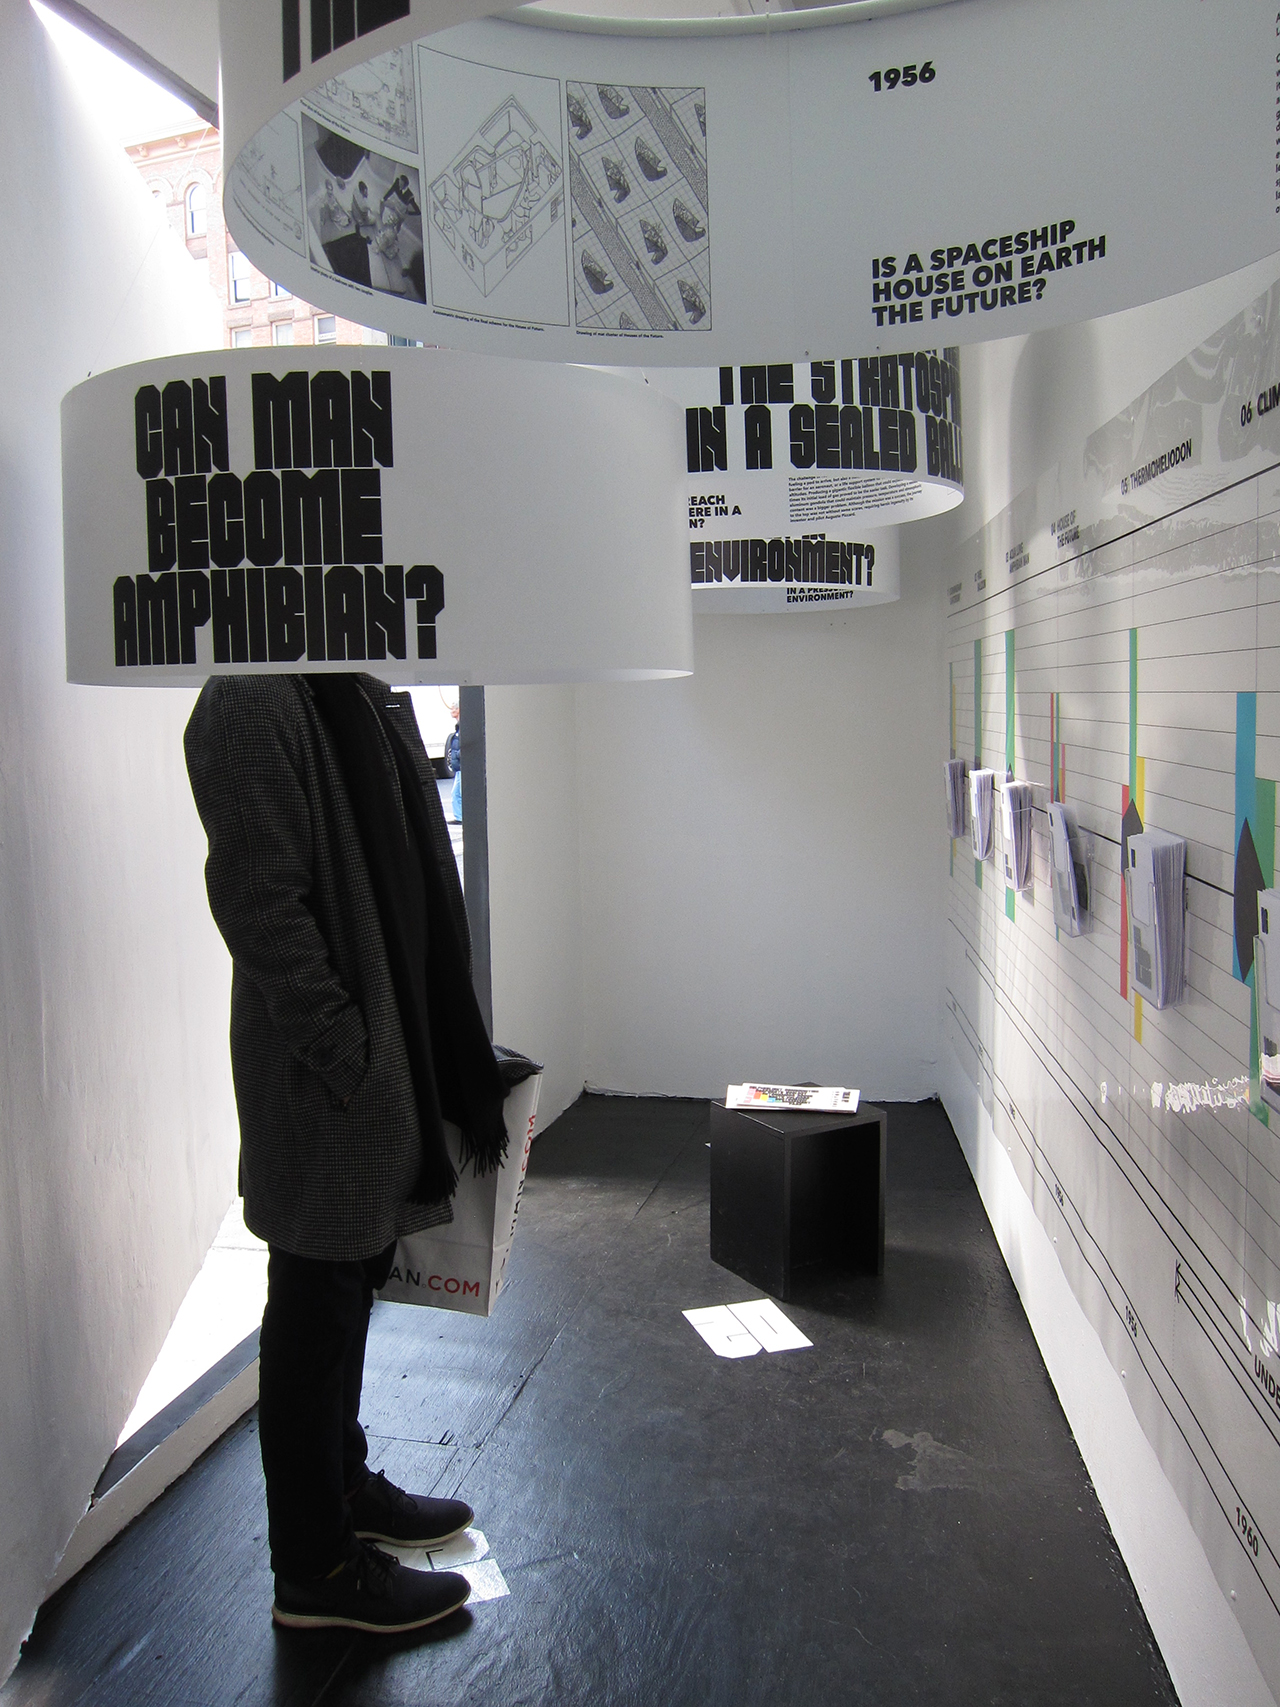 Installation view of 'Closed Worlds' at Storefront for Art and Architecture (photo by the author for Hyperallergic) (click to enlarge)